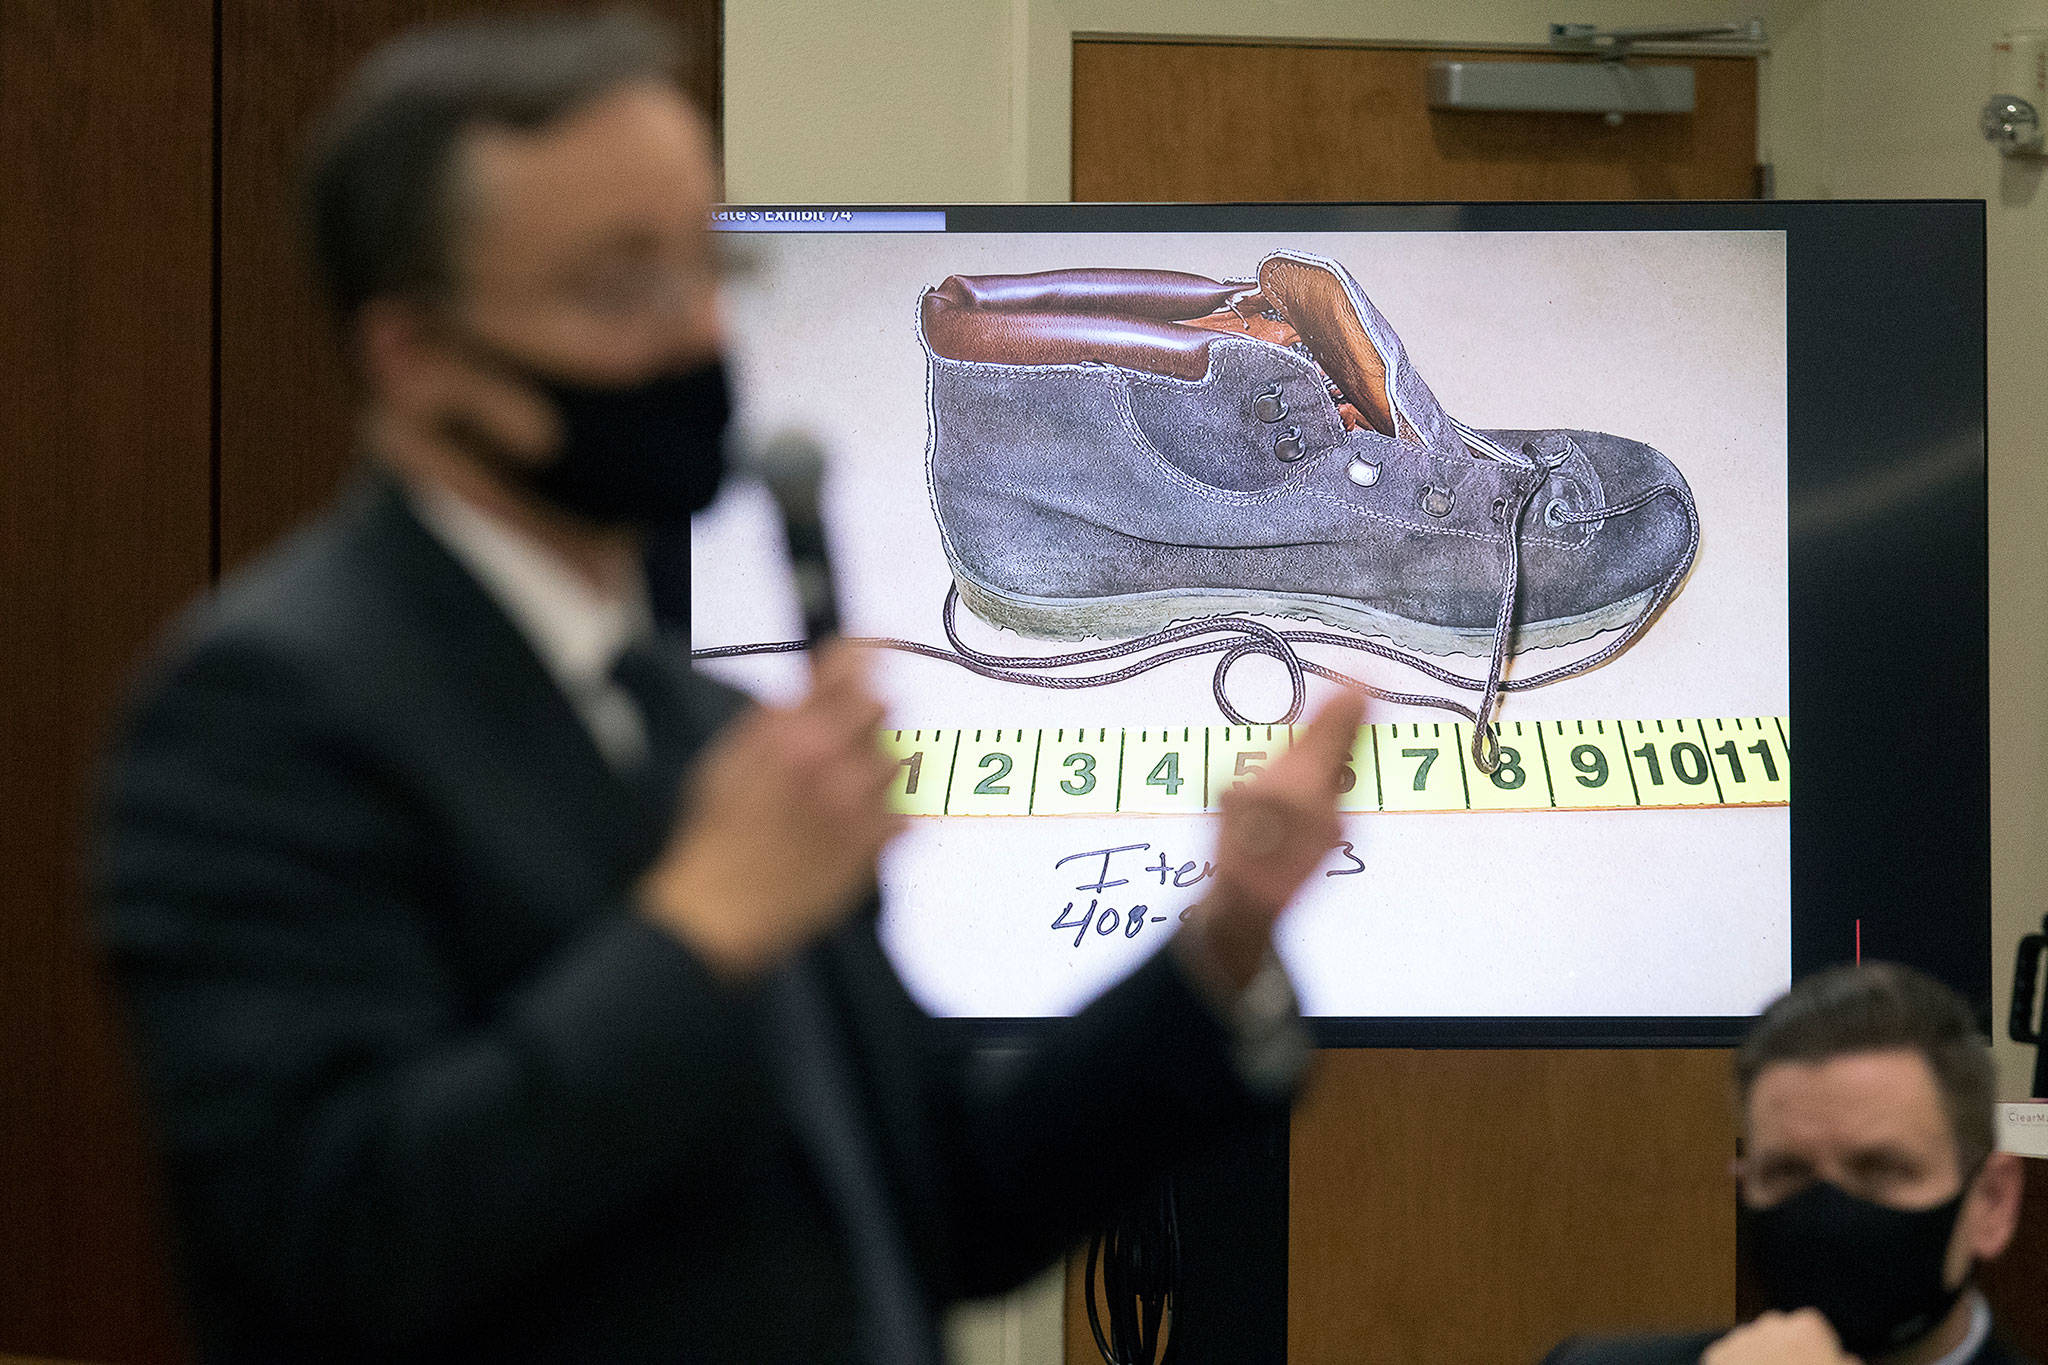 Snohomish County deputy prosecutor Craig Matheson talks about DNA found on a shoe, worn by Jody Loomis, during his opening statement in the murder trial of Terrence Miller at the Snohomish County Courthouse on Monday in Everett. (Andy Bronson / The Herald)